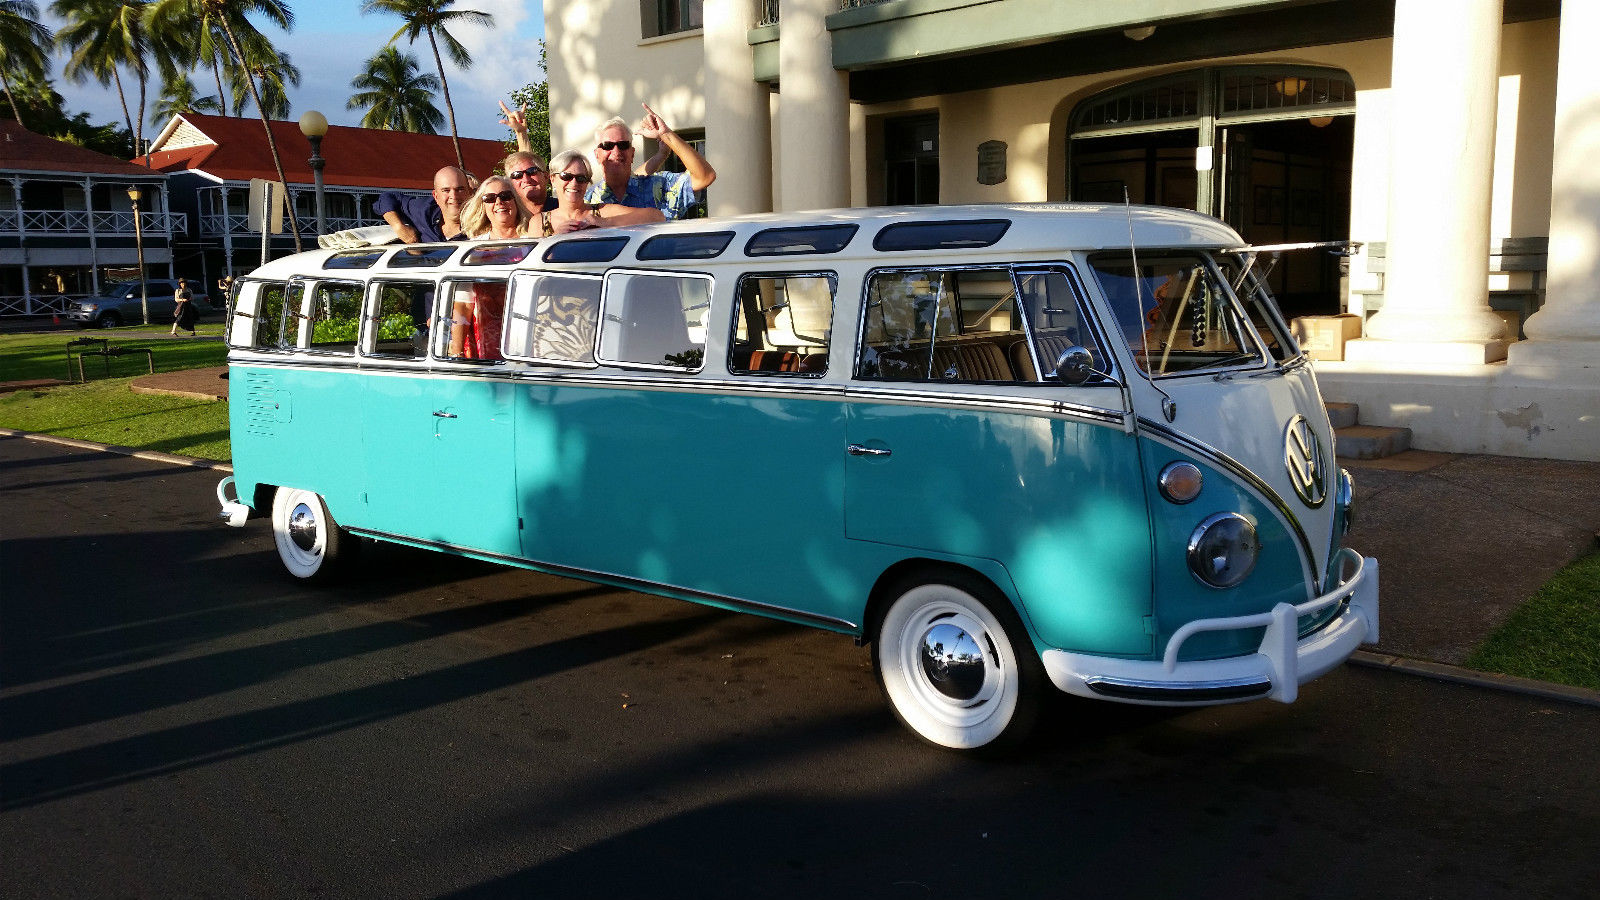 World s Only 1965 Volkswagen Stretch Bus Fits 12 Passengers  Is Up     World s Only 1965 Volkswagen Stretch Bus World s Only 1965 Volkswagen  Stretch Bus